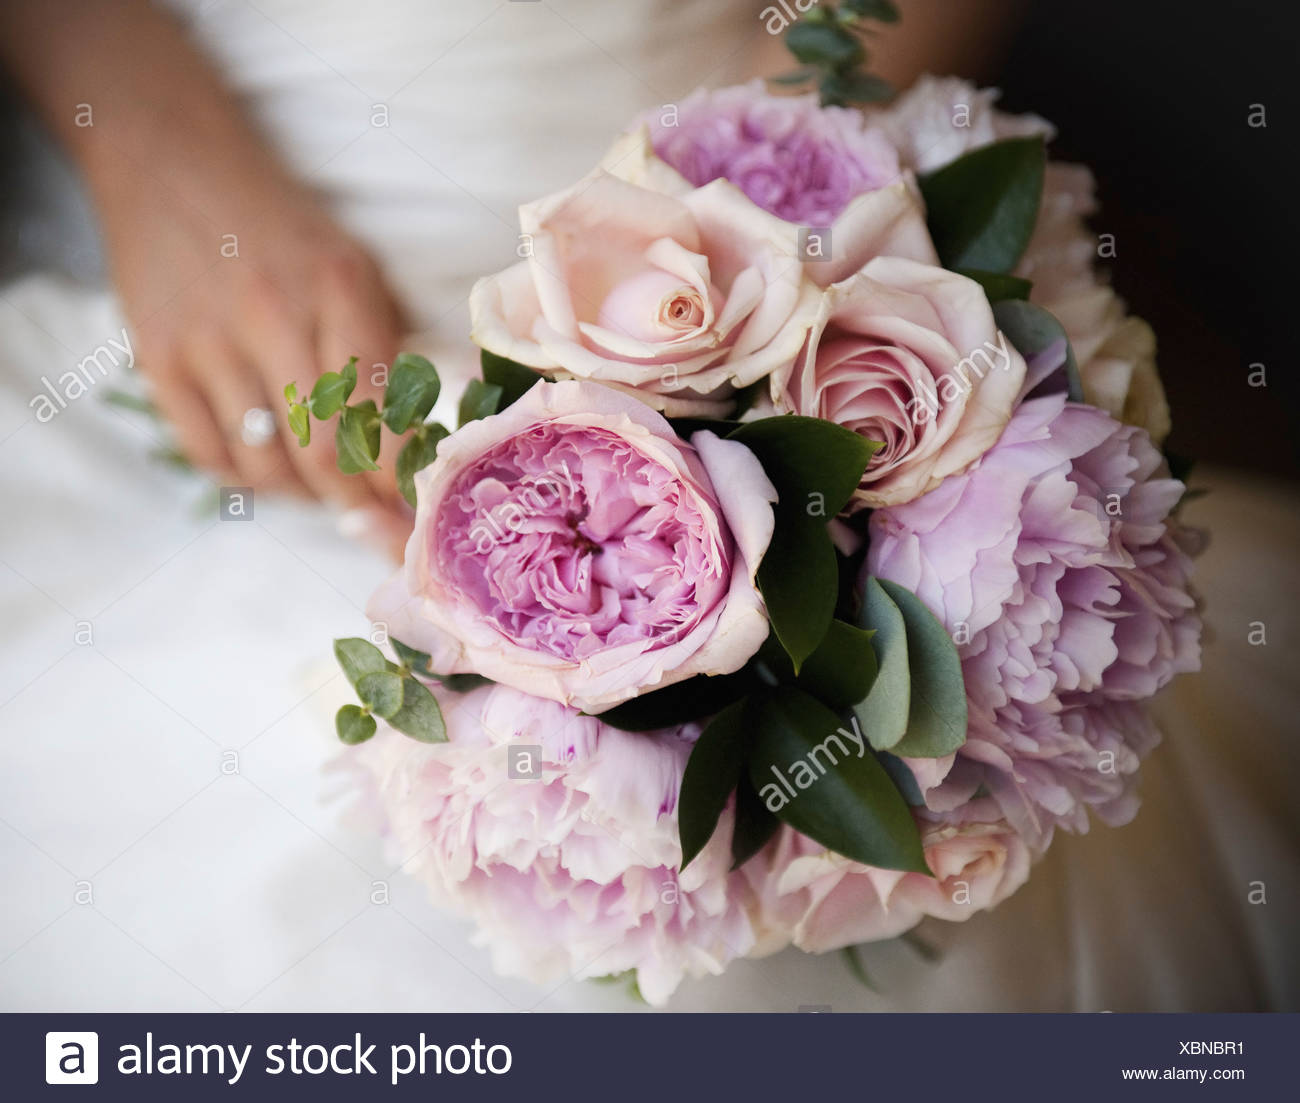 Bouquet Sposa Rose E Peonie.A Bride Holding A Wedding Bouquet Of Roses And Peonies Pink And